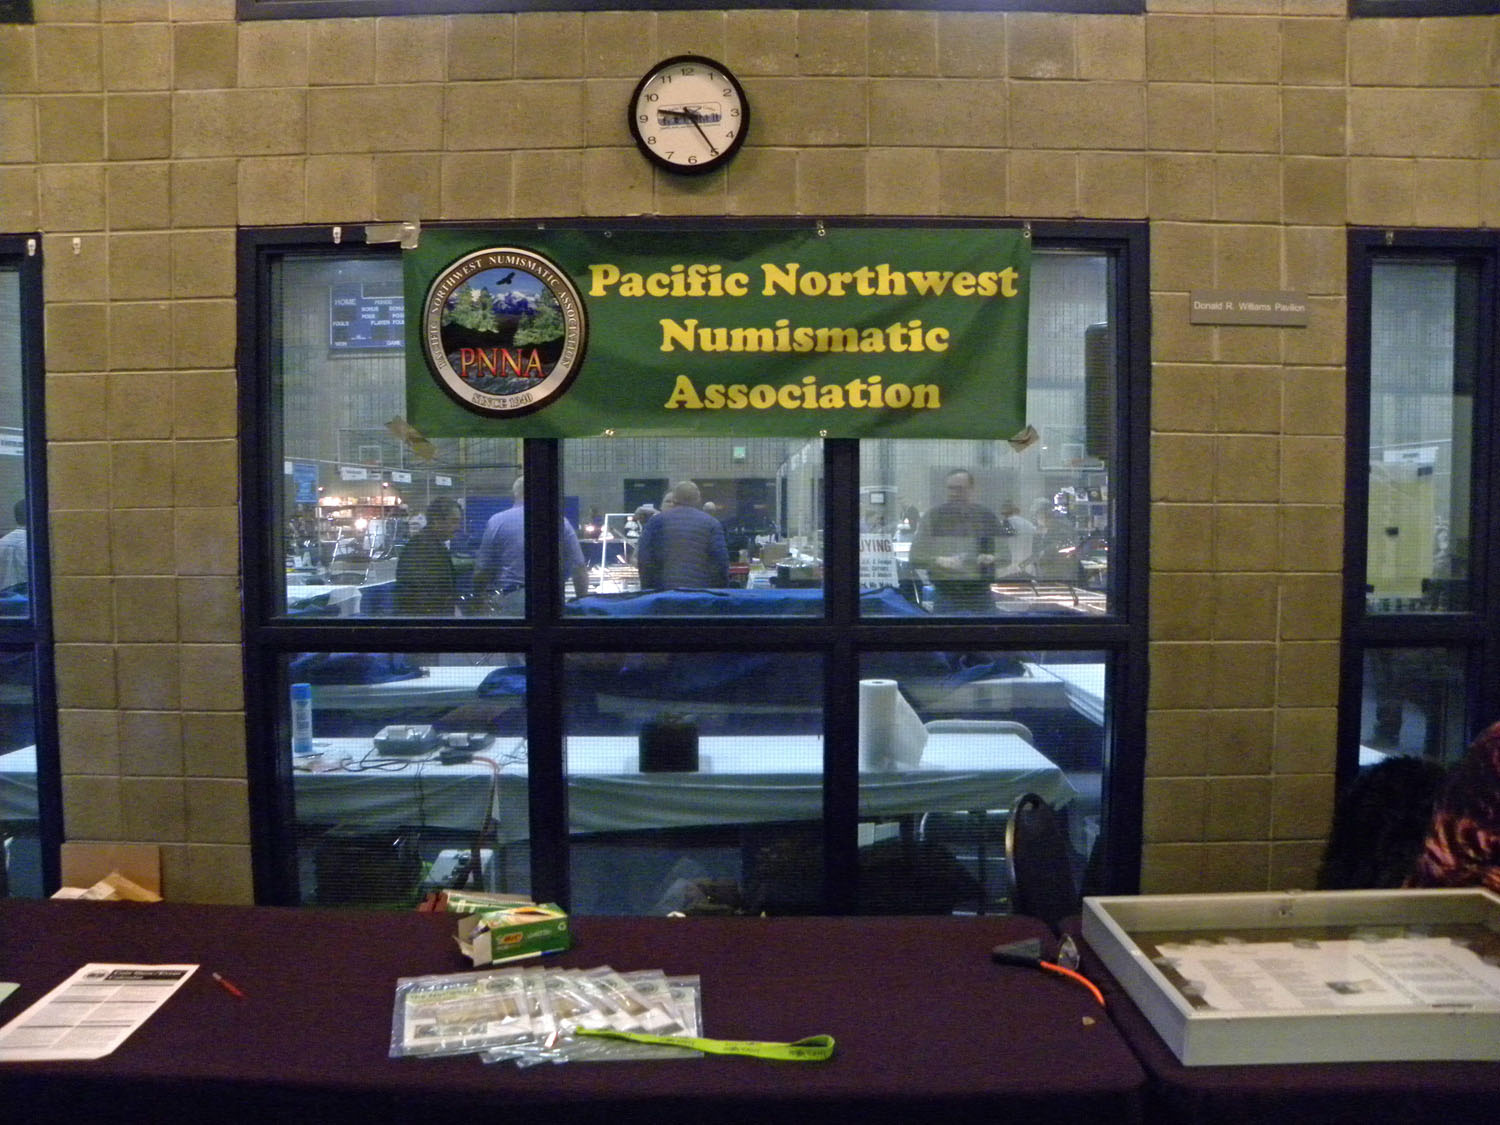 Image from 2017 PNNA convention